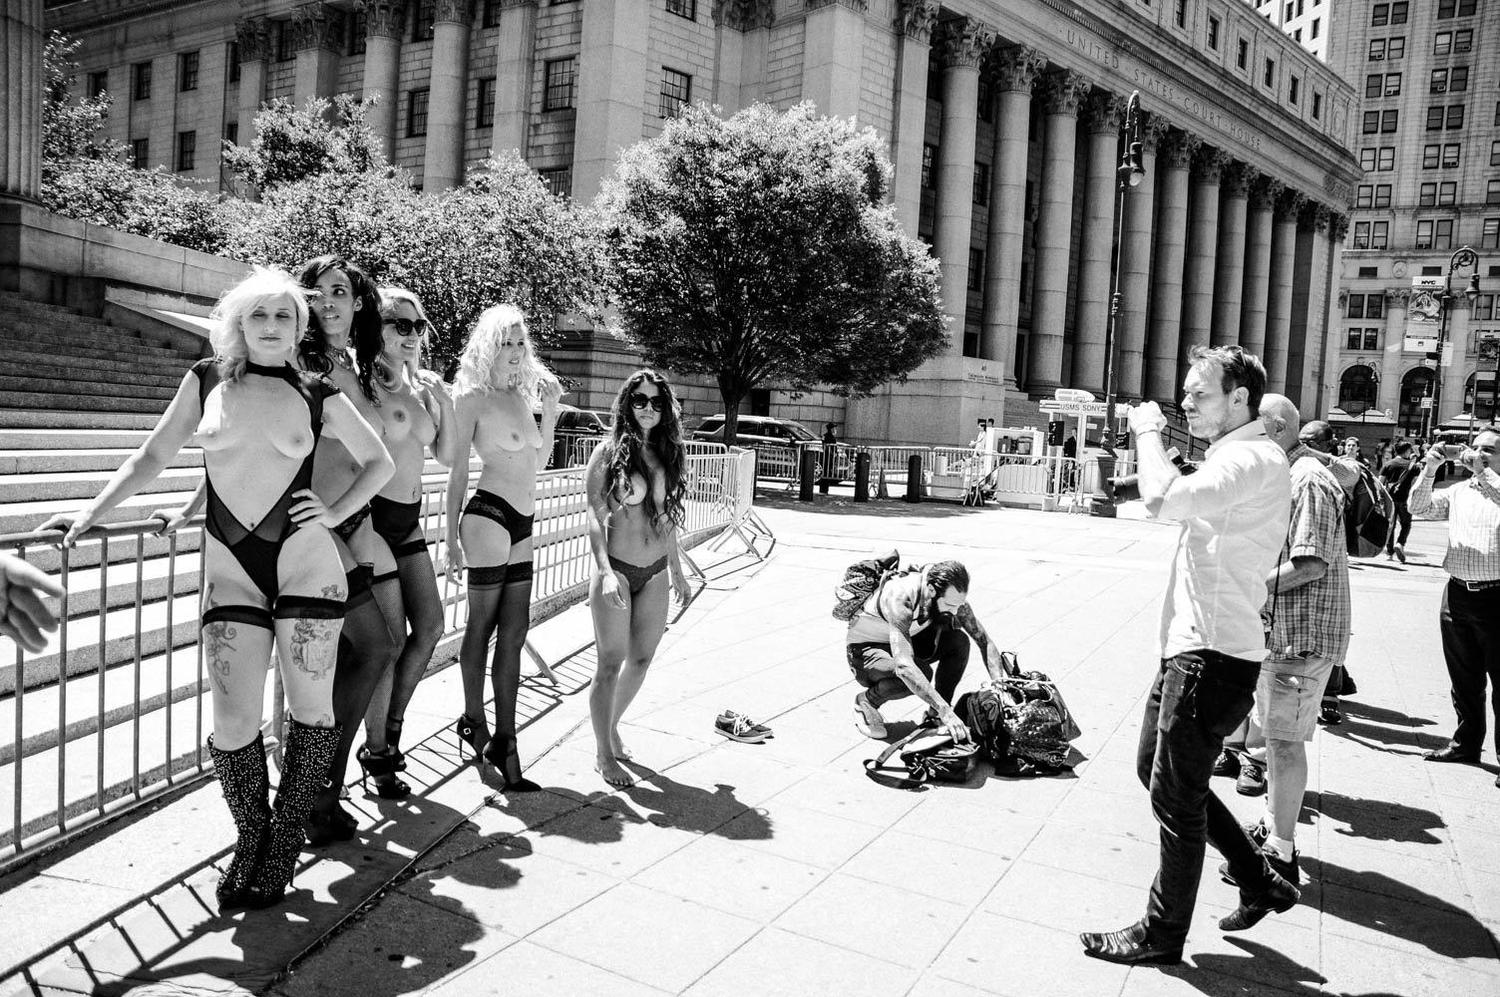 Banned ESB Photographer Protests By Shooting Topless Models at New York Supreme Court [NSFW]